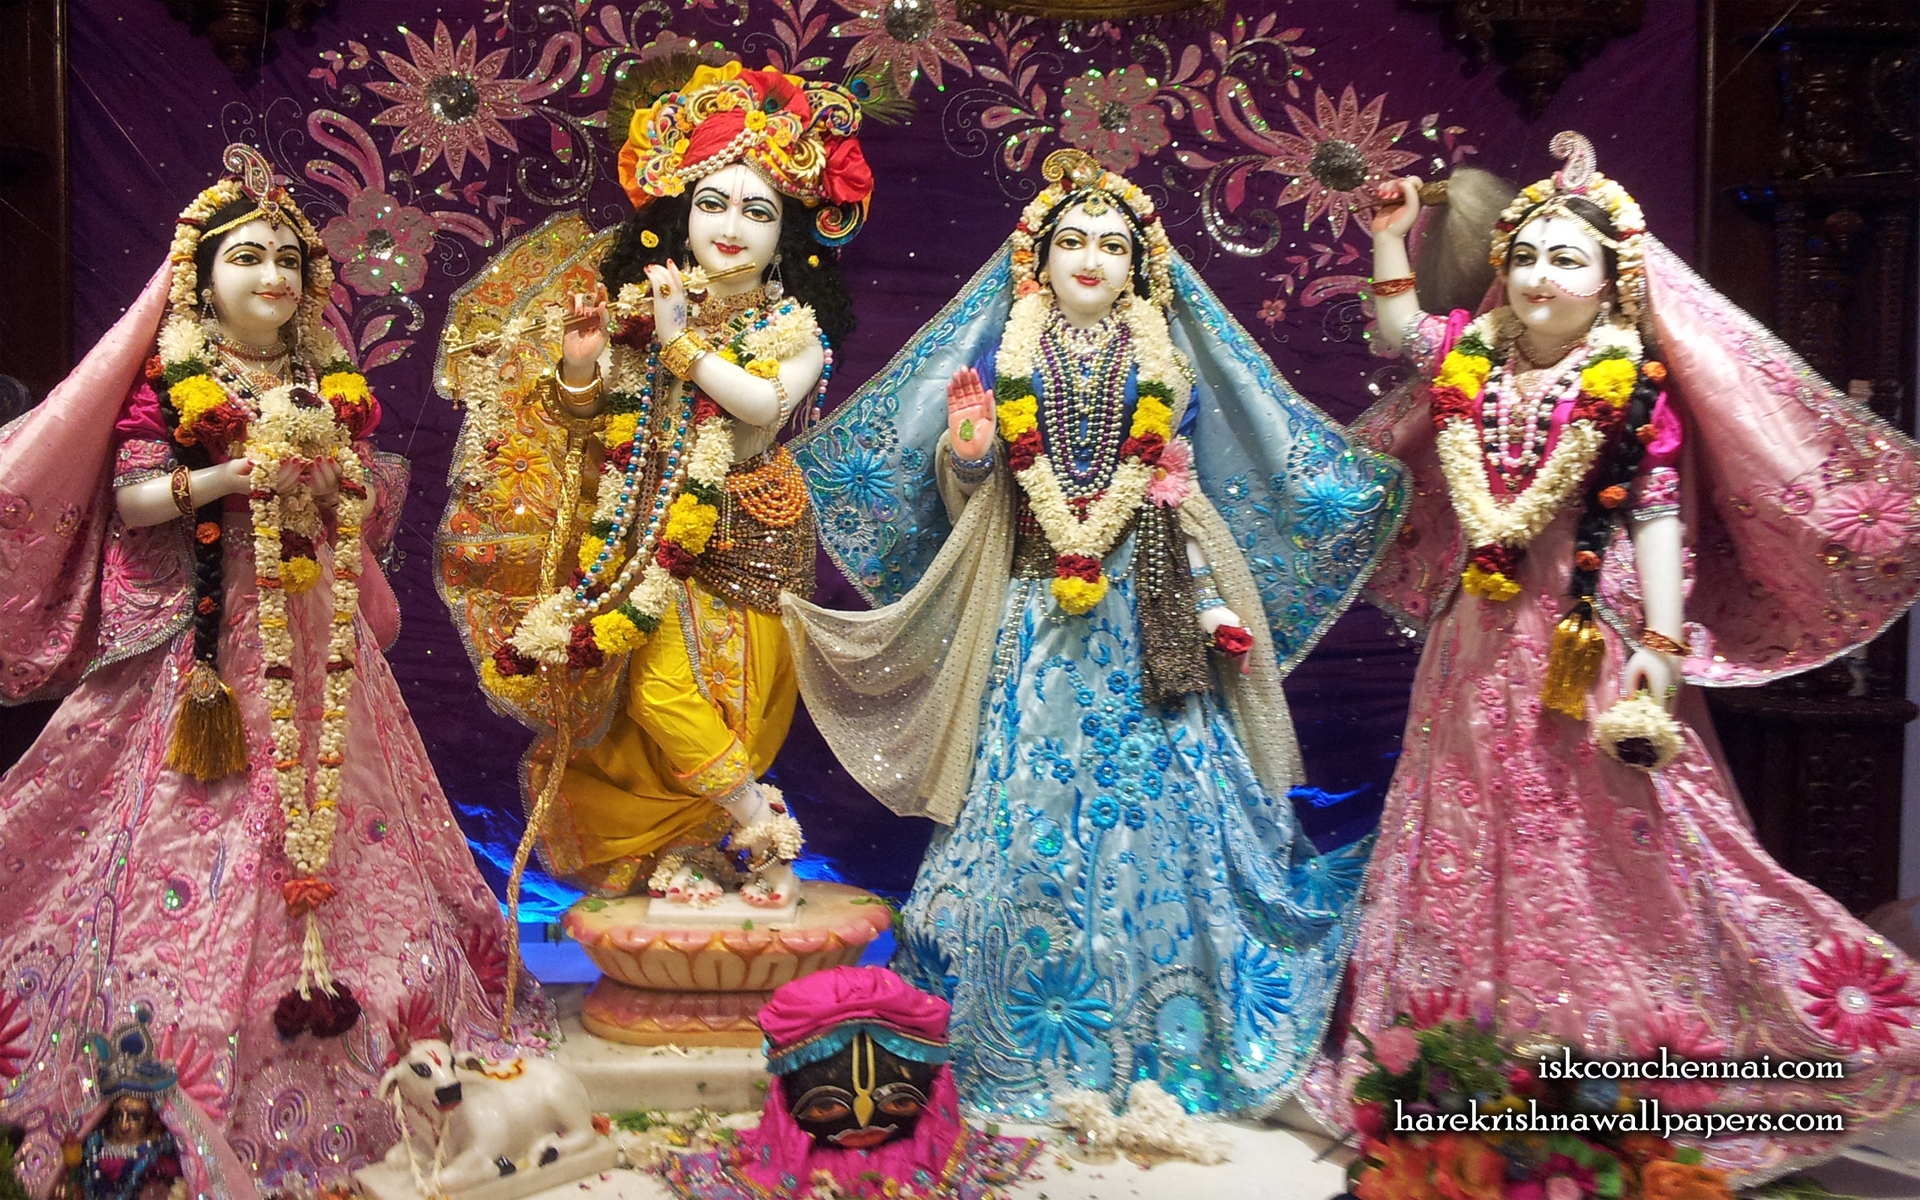 Sri Sri Radha Krishna Lalita Vishakha Wallpaper (002) Size 1920x1200 Download